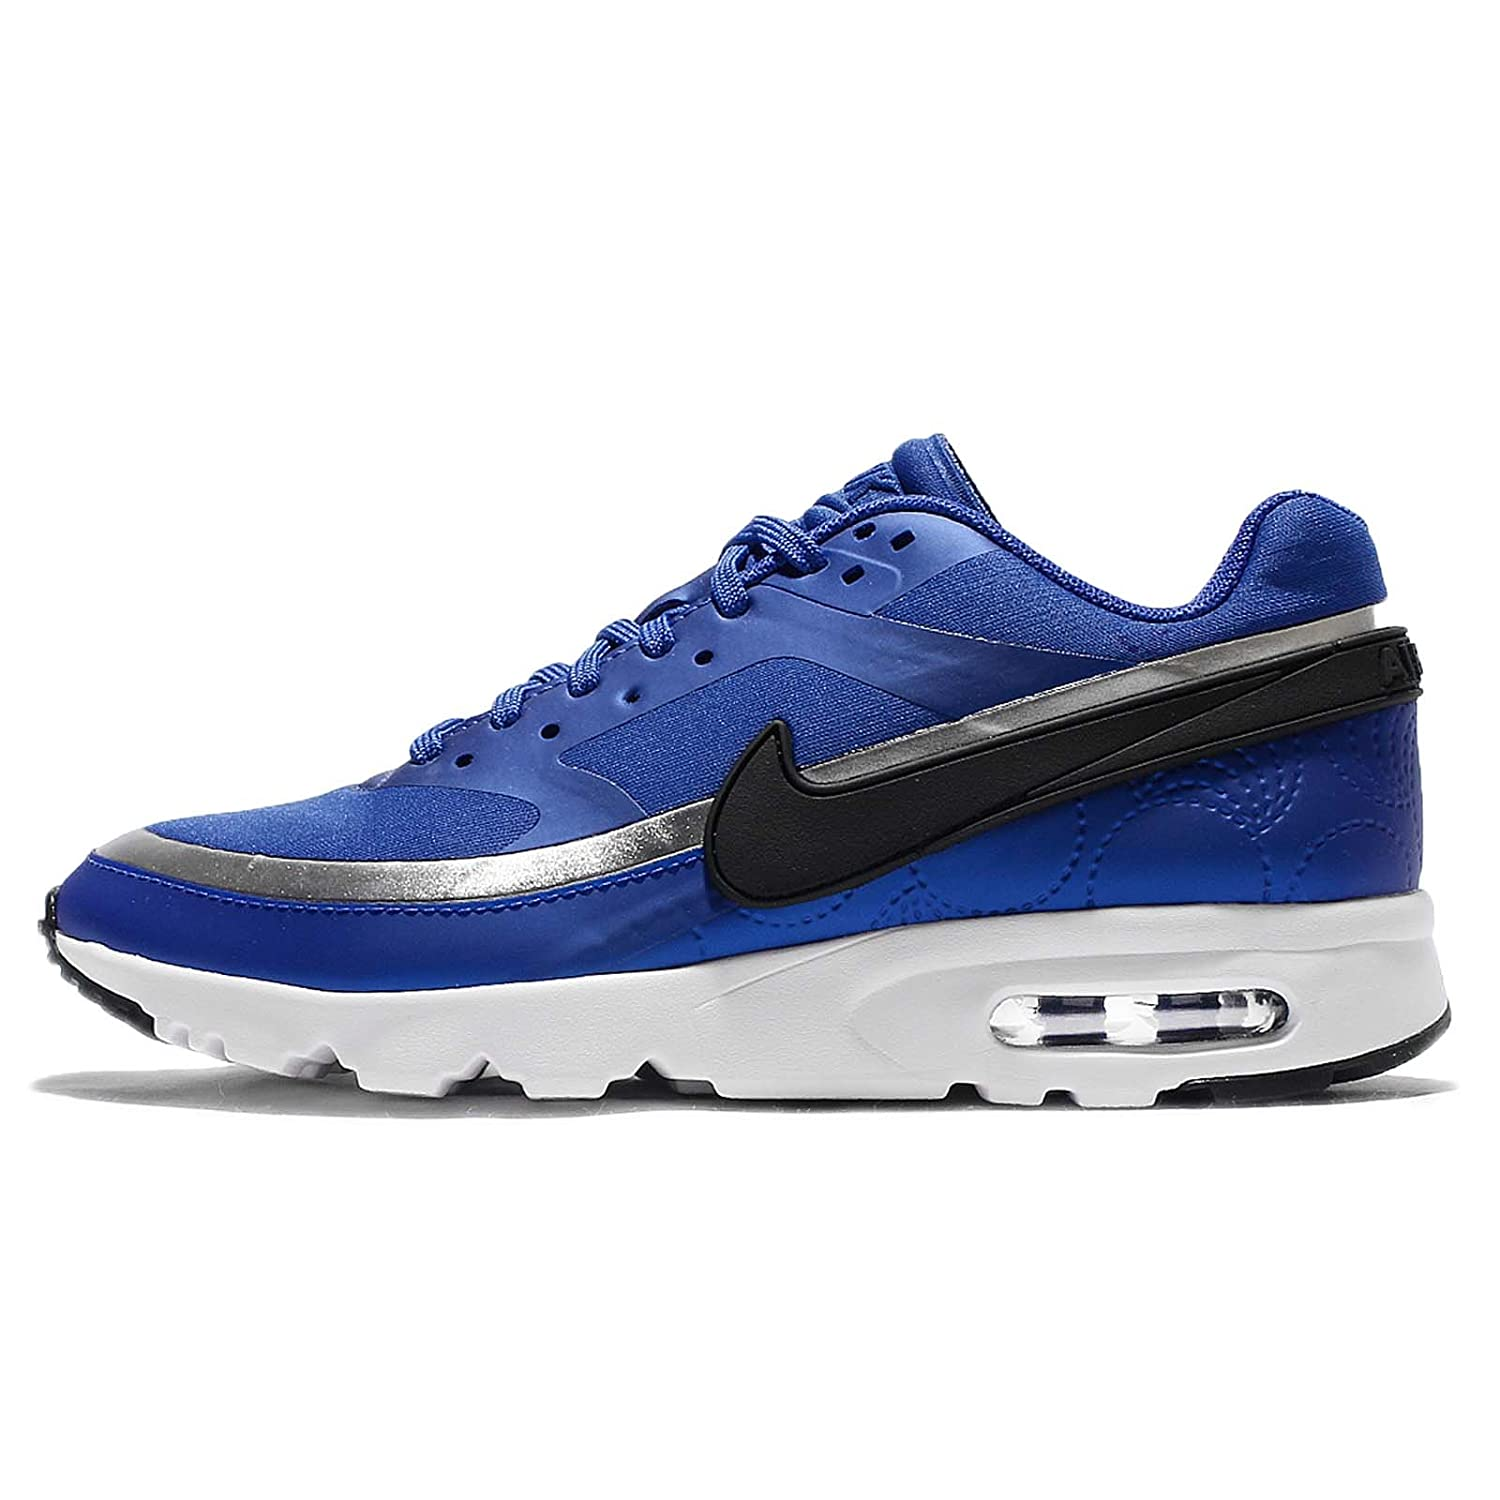 newest 96be3 e10d4 ... top quality amazon nike womens air max bw ultra lotc qs running shoes  blue white 847076